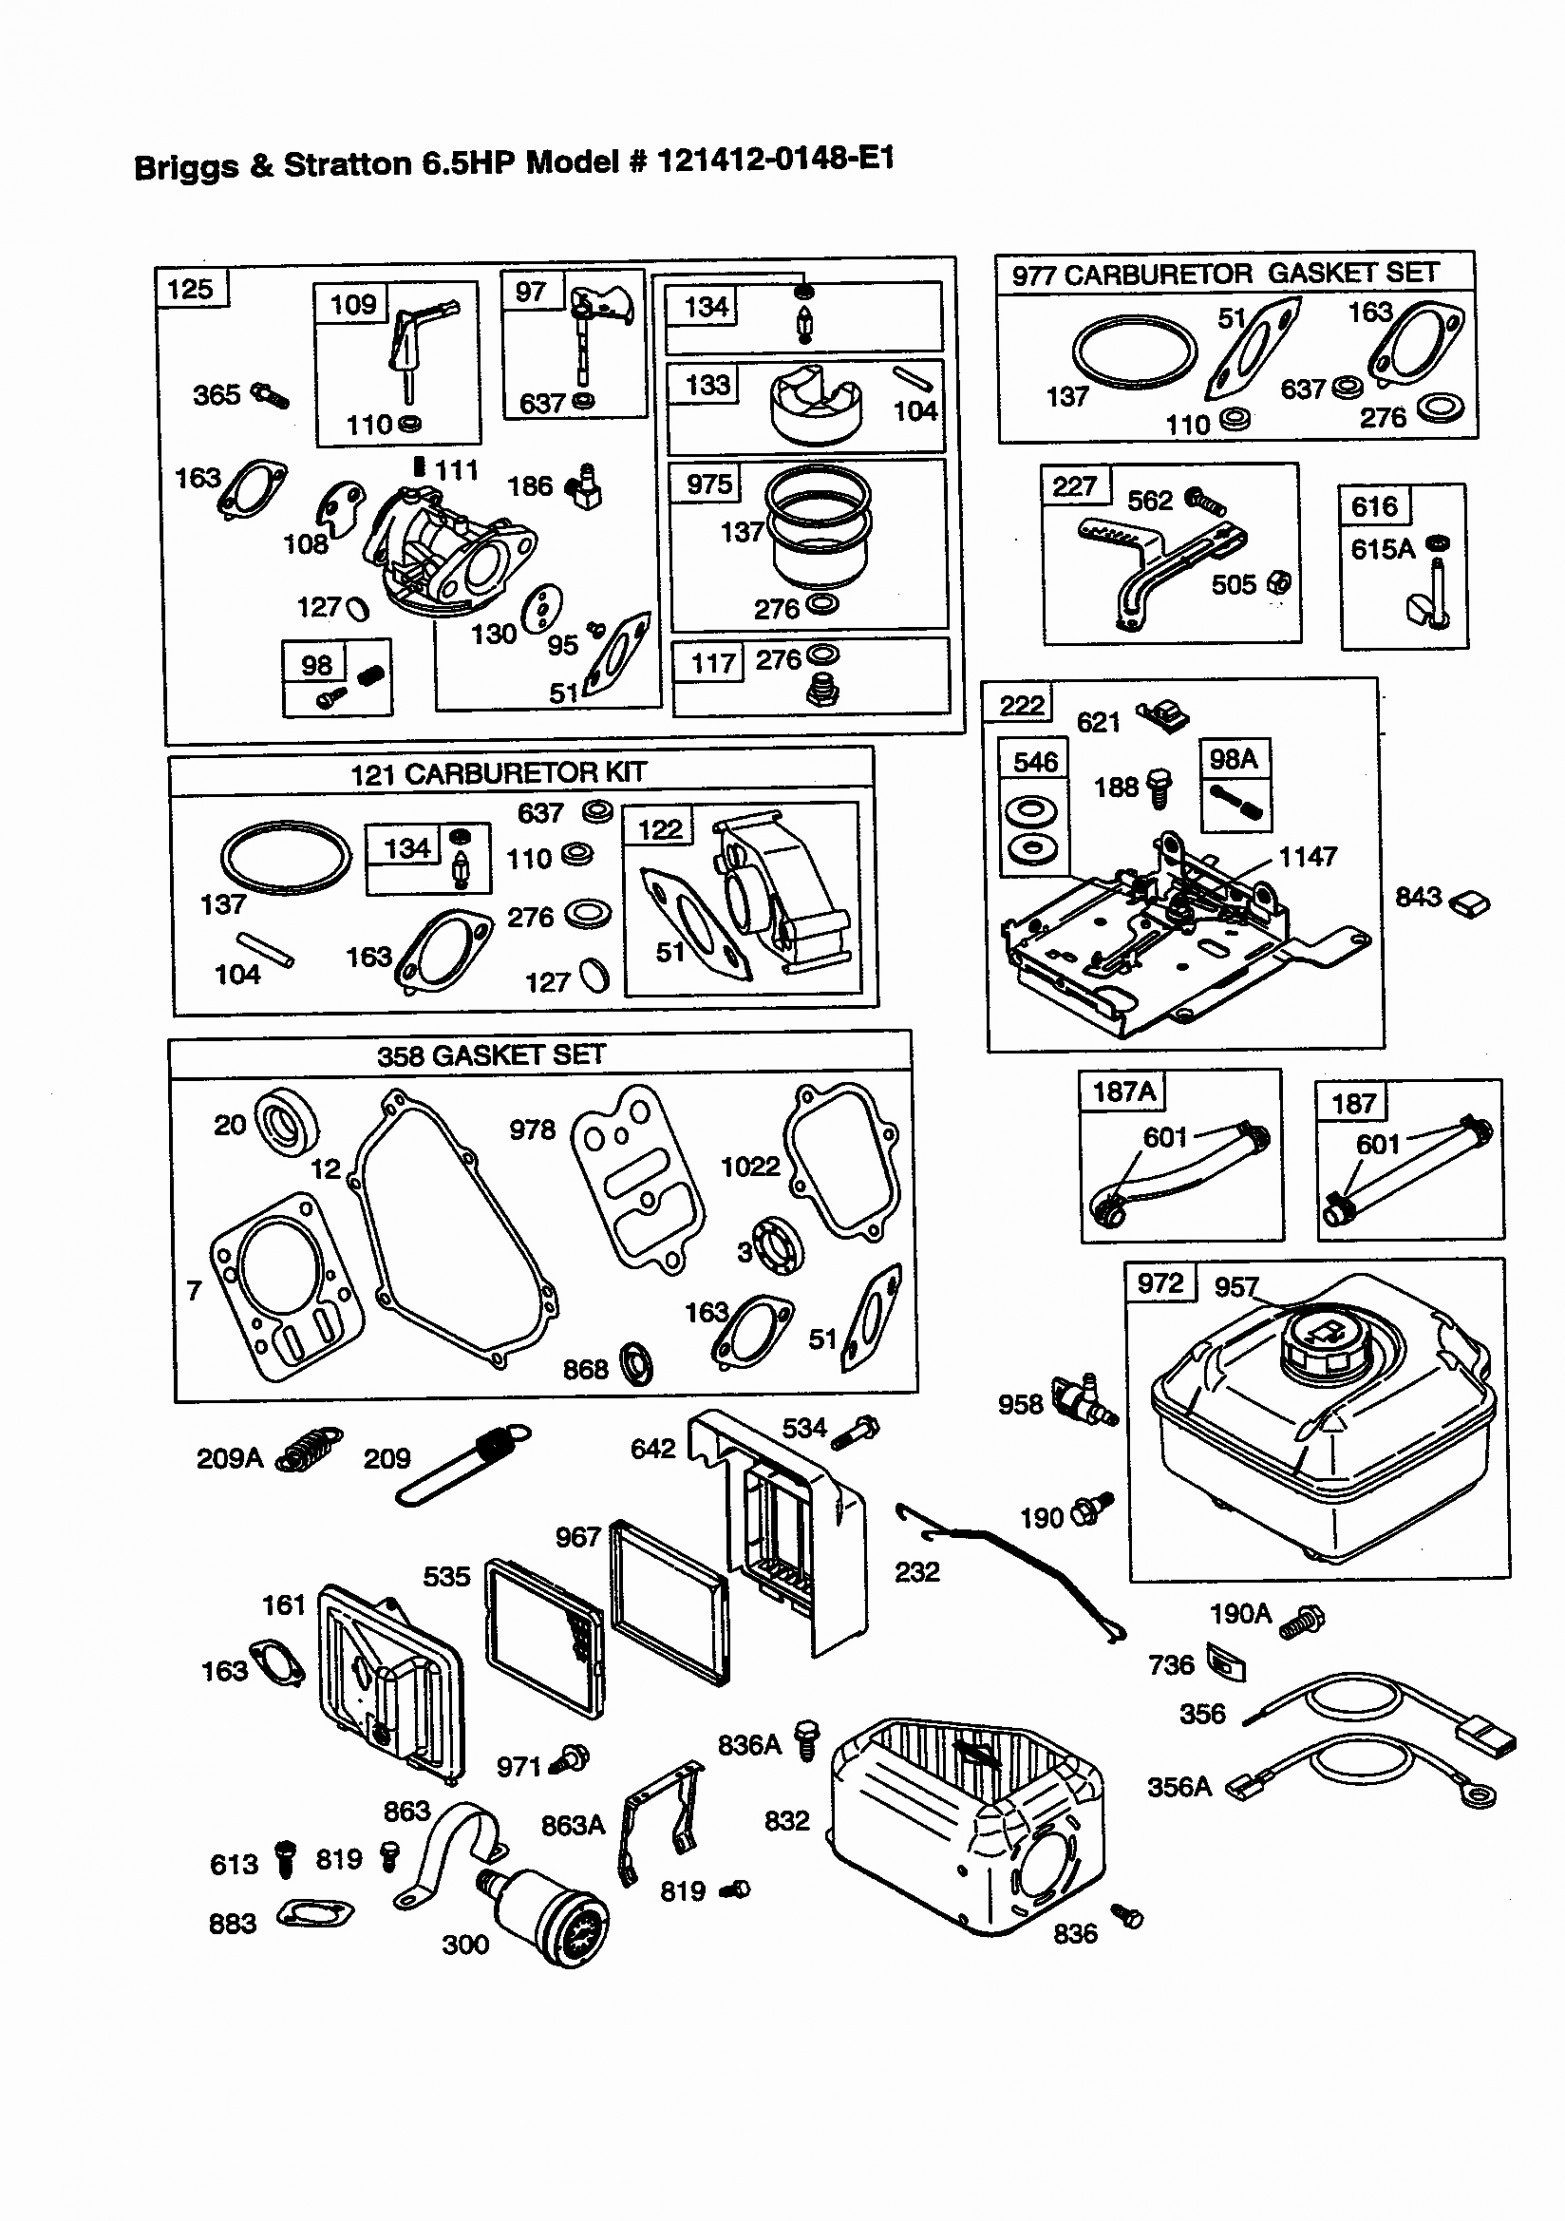 21 Hp Briggs and Stratton Engine Diagram 50 Briggs and Stratton Throttle Spring Diagram Gy8g – Arichikafo Of 21 Hp Briggs and Stratton Engine Diagram